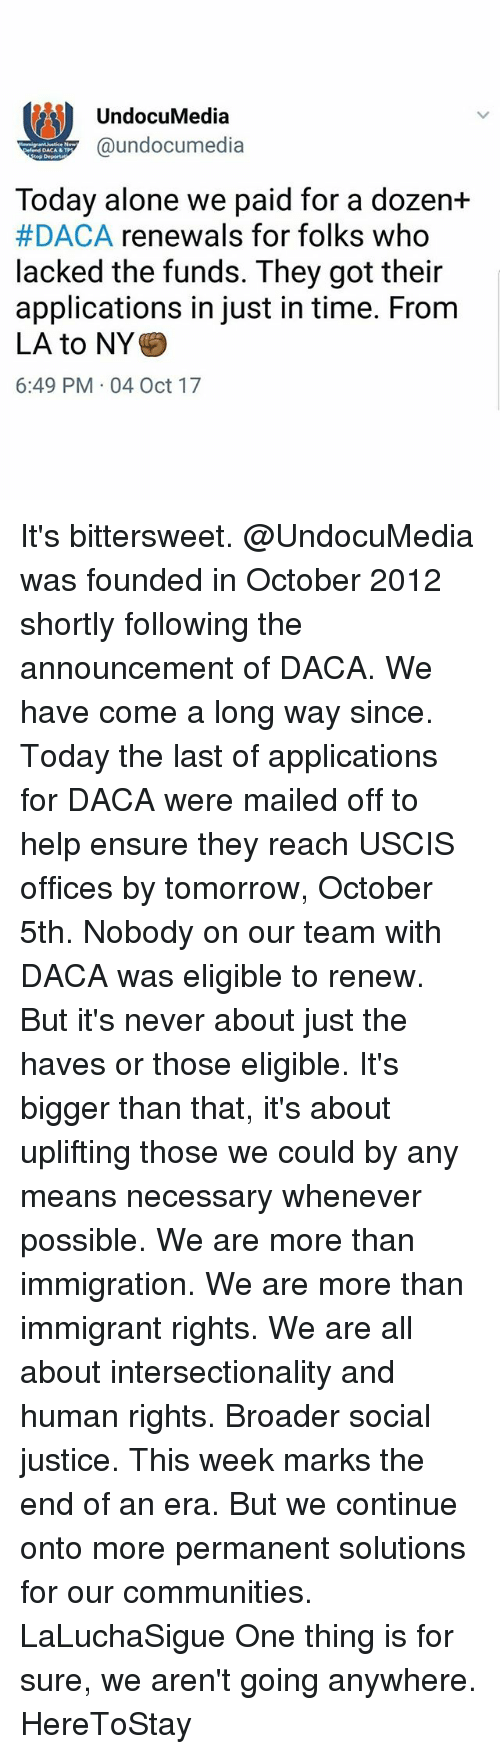 Being Alone, Memes, and Ensure: UndocuMedia  @undocumedia  elend DACA &TP  tep Deportat  Today alone we paid for a dozen+  #DACA renewals for folks who  lacked the funds. They got their  applications in just in time. From  LA to NY*  6:49 PM 04 Oct 17 It's bittersweet. @UndocuMedia was founded in October 2012 shortly following the announcement of DACA. We have come a long way since. Today the last of applications for DACA were mailed off to help ensure they reach USCIS offices by tomorrow, October 5th. Nobody on our team with DACA was eligible to renew. But it's never about just the haves or those eligible. It's bigger than that, it's about uplifting those we could by any means necessary whenever possible. We are more than immigration. We are more than immigrant rights. We are all about intersectionality and human rights. Broader social justice. This week marks the end of an era. But we continue onto more permanent solutions for our communities. LaLuchaSigue One thing is for sure, we aren't going anywhere. HereToStay